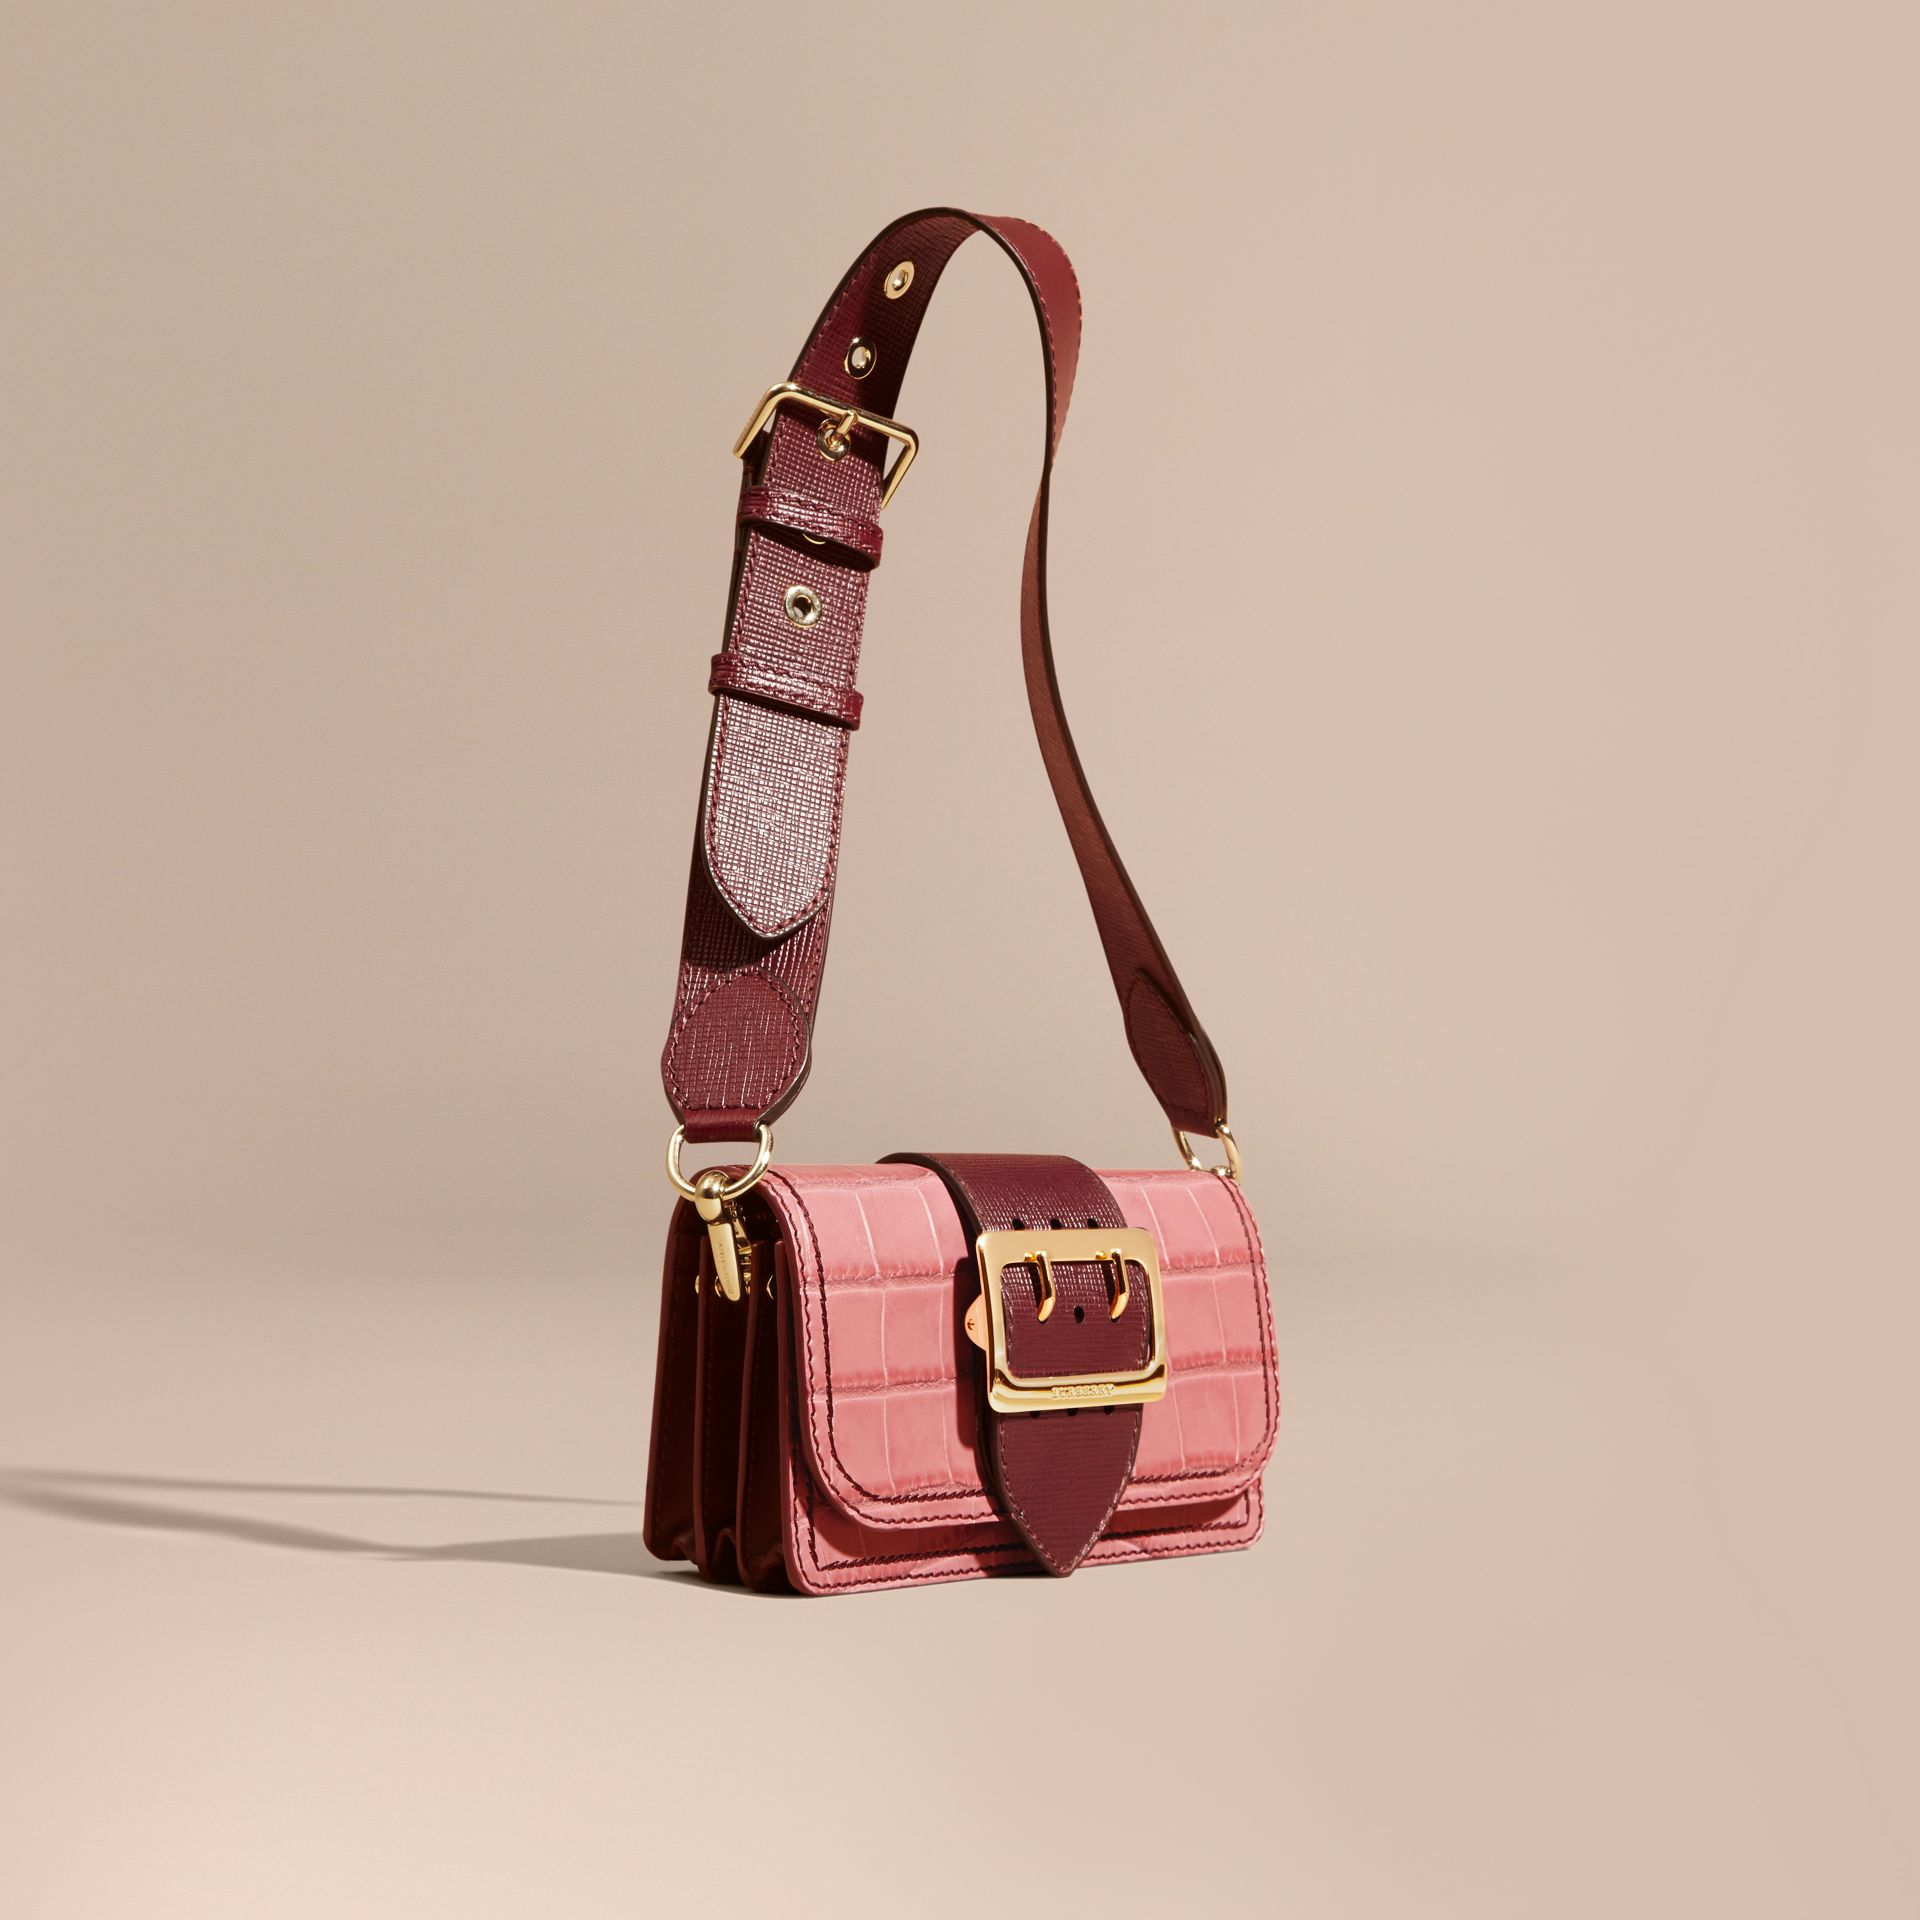 The Small Buckle Bag in Alligator and Leather in Dusky Pink/ Burgundy - Women | Burberry United States - gallery image 1